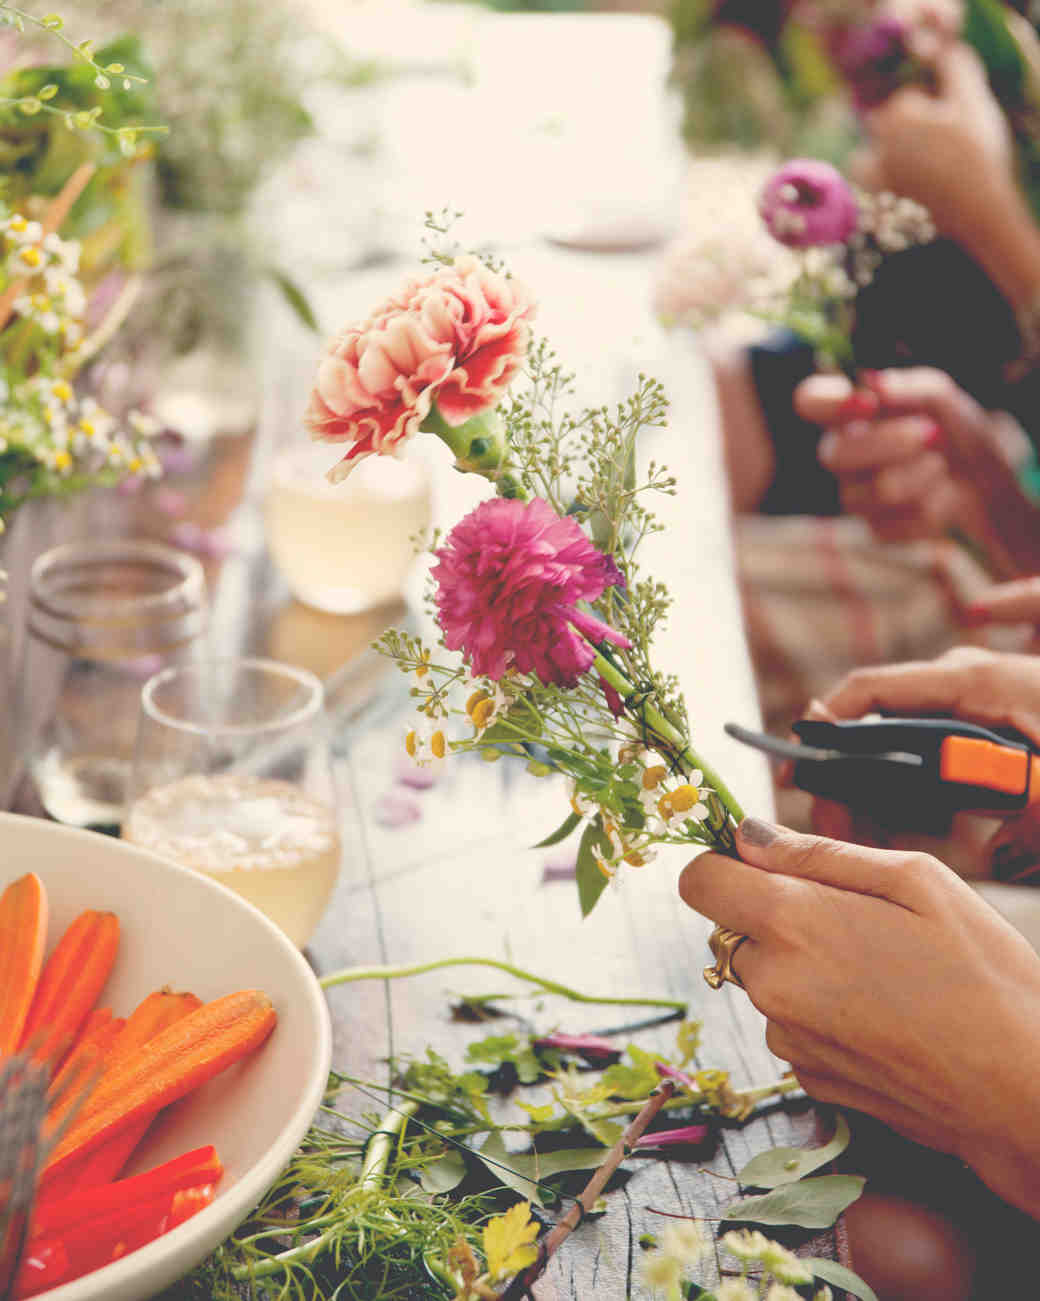 Flower Arranging Class for a Bridal Shower